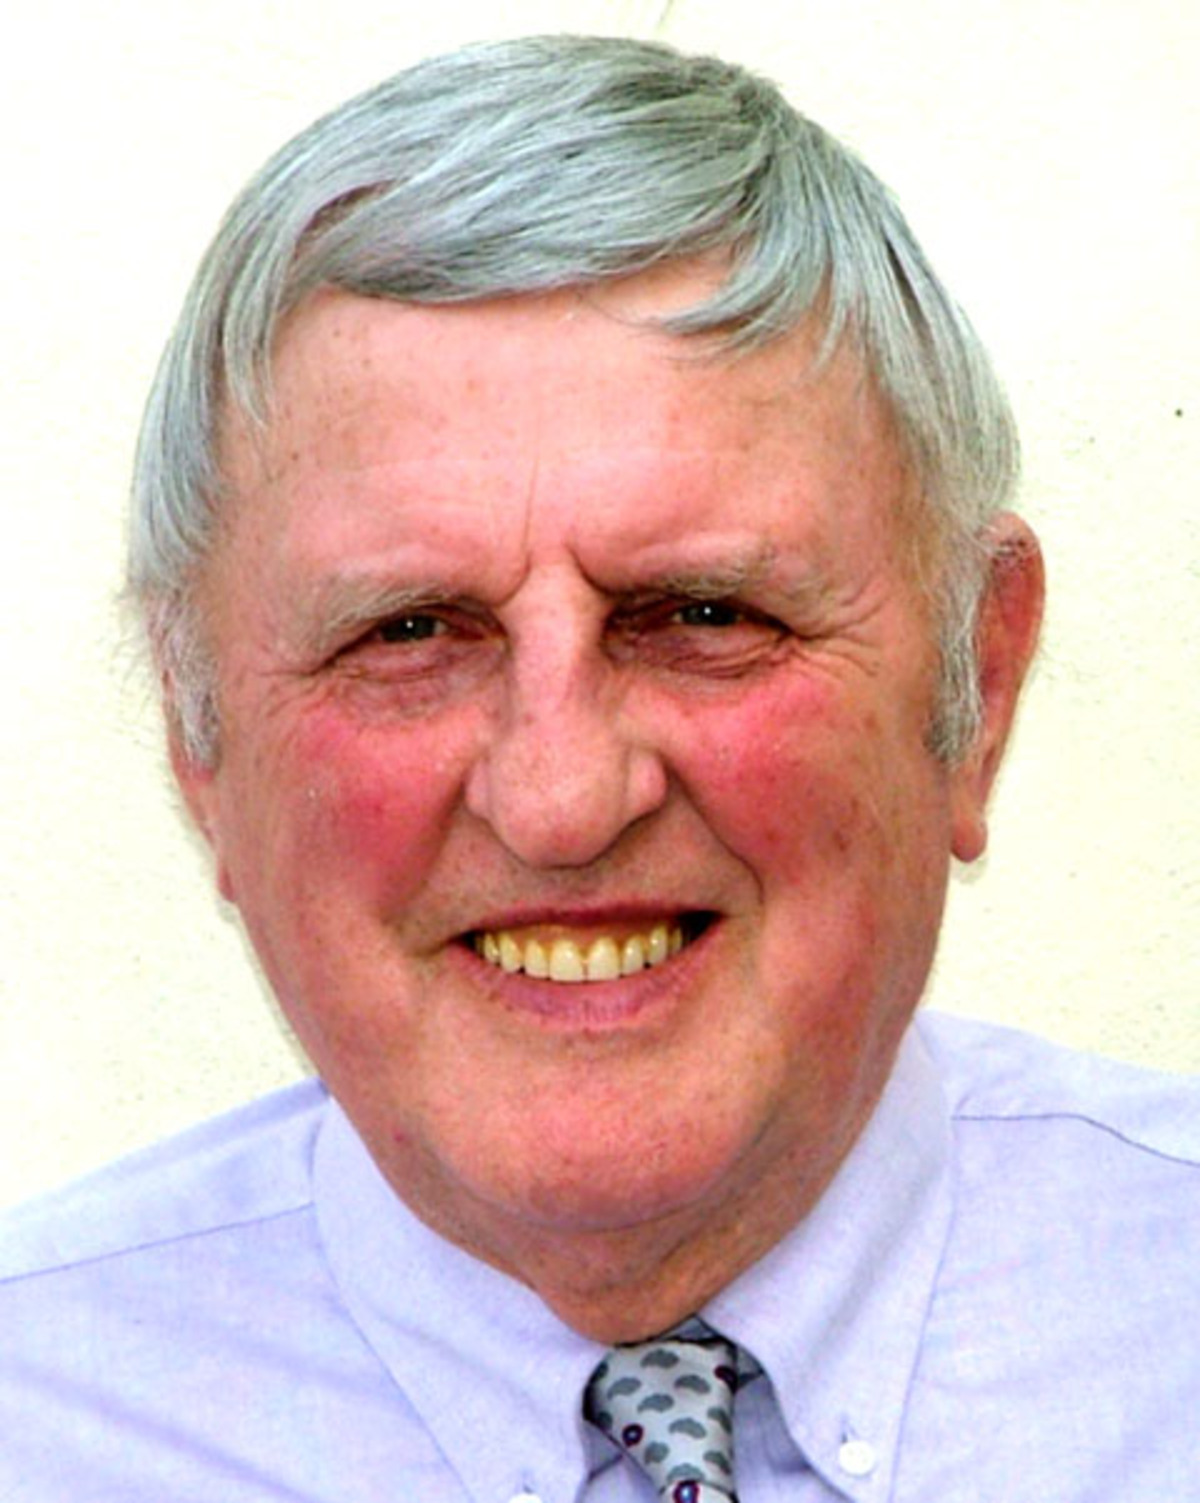 West Mercia Police and Crime Commisioner Bill Longmore has spoken of his lung cancer diagnosis.